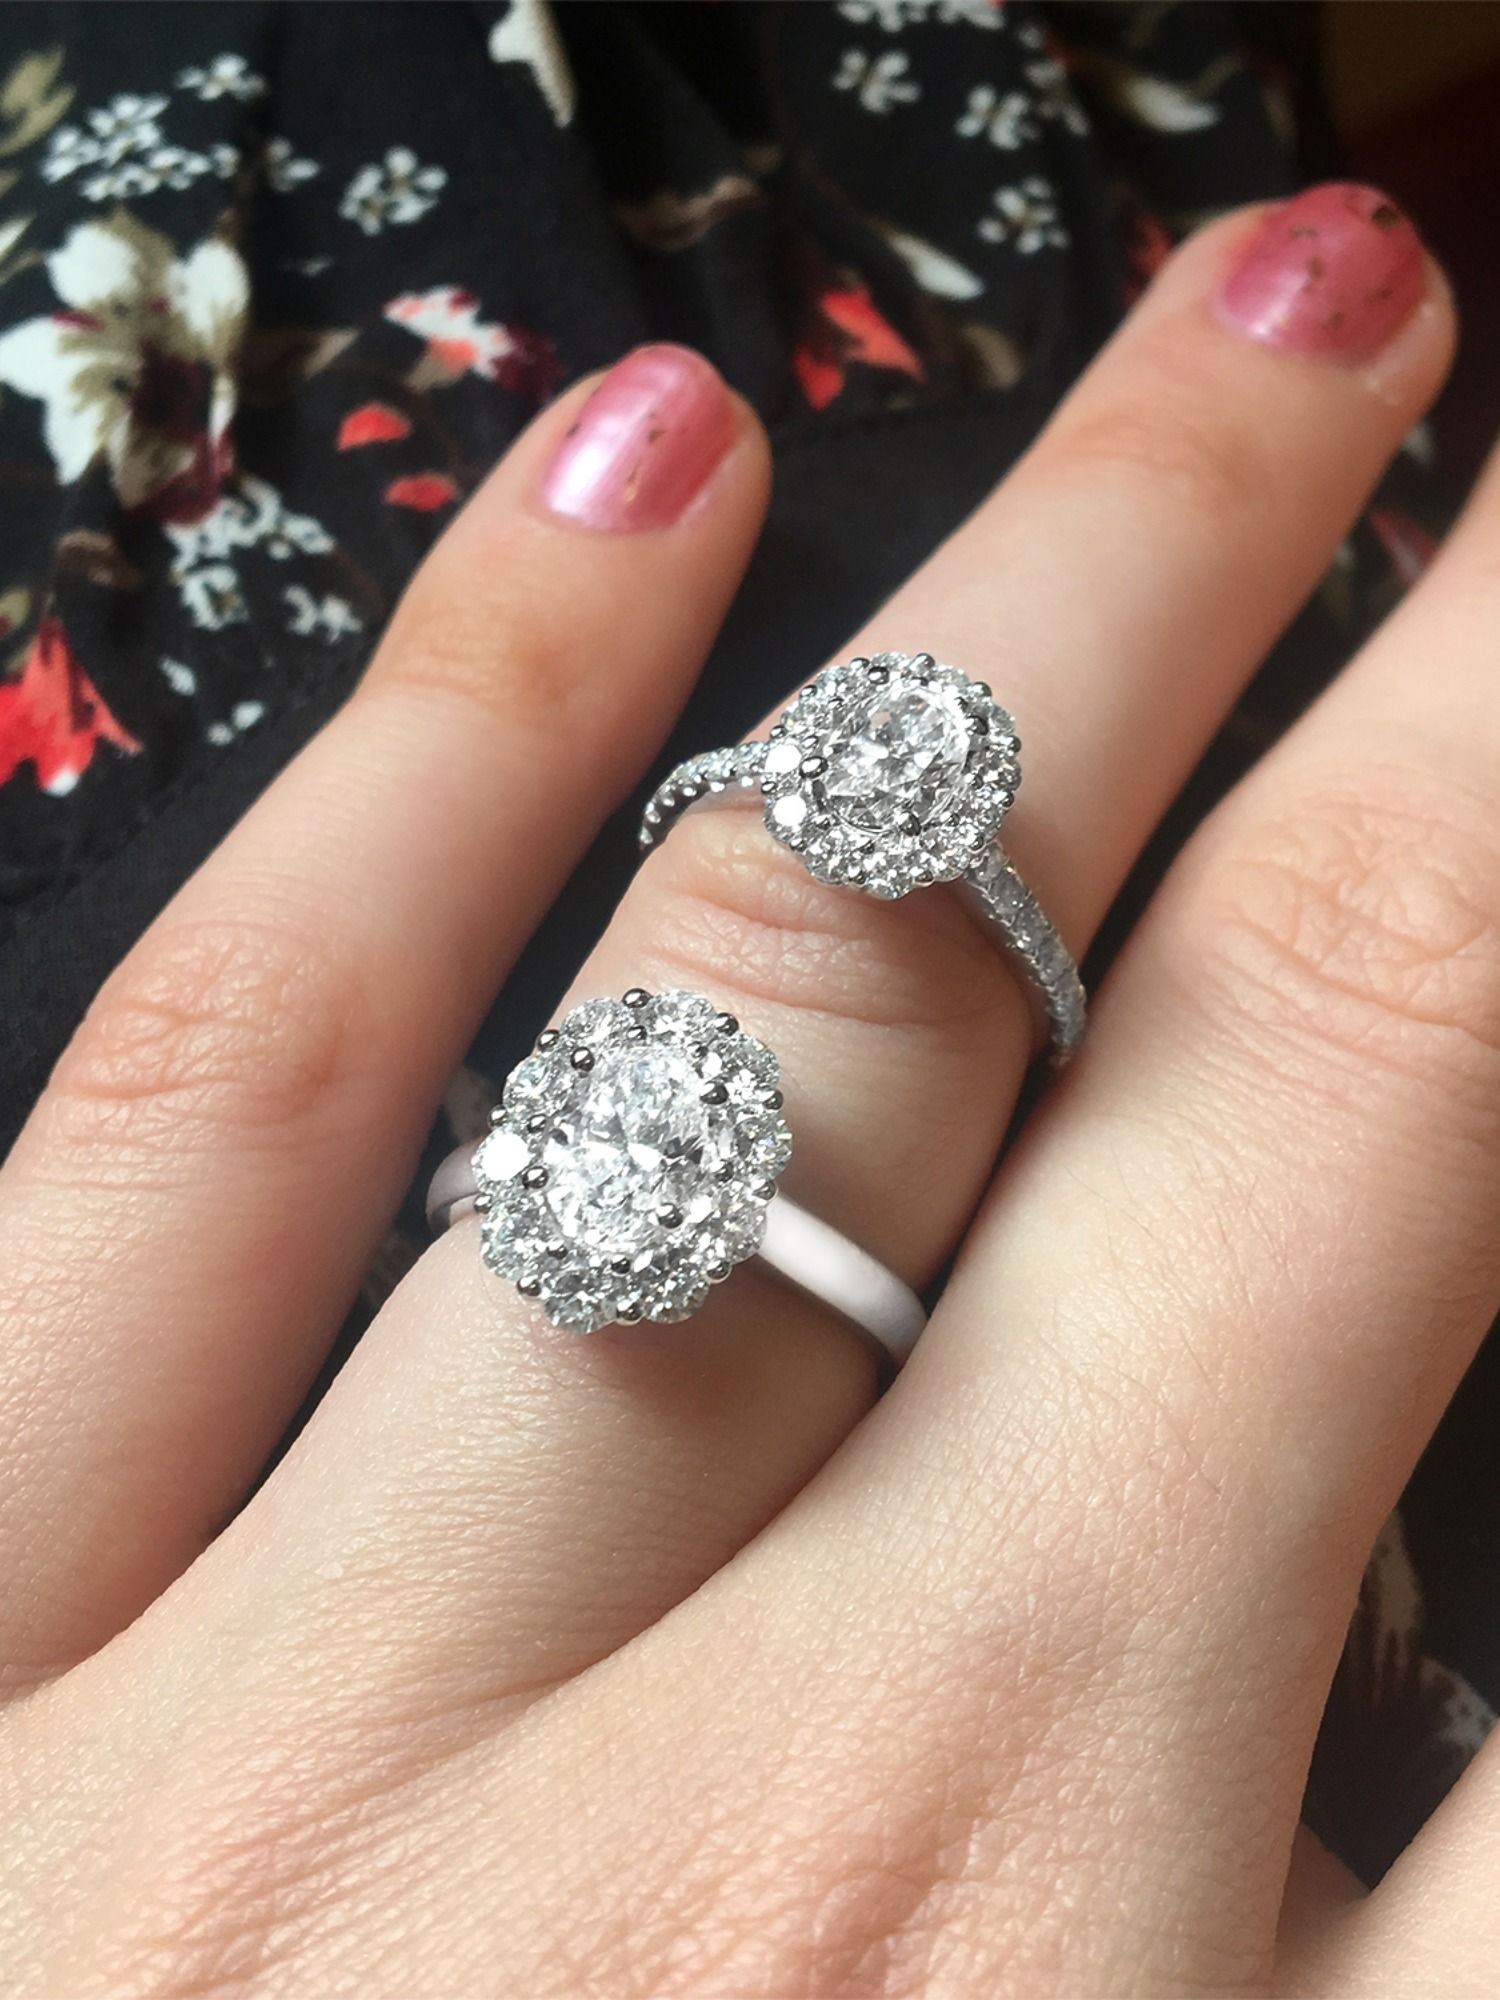 A stunning pair of diamond halo rings. The top ring is 1